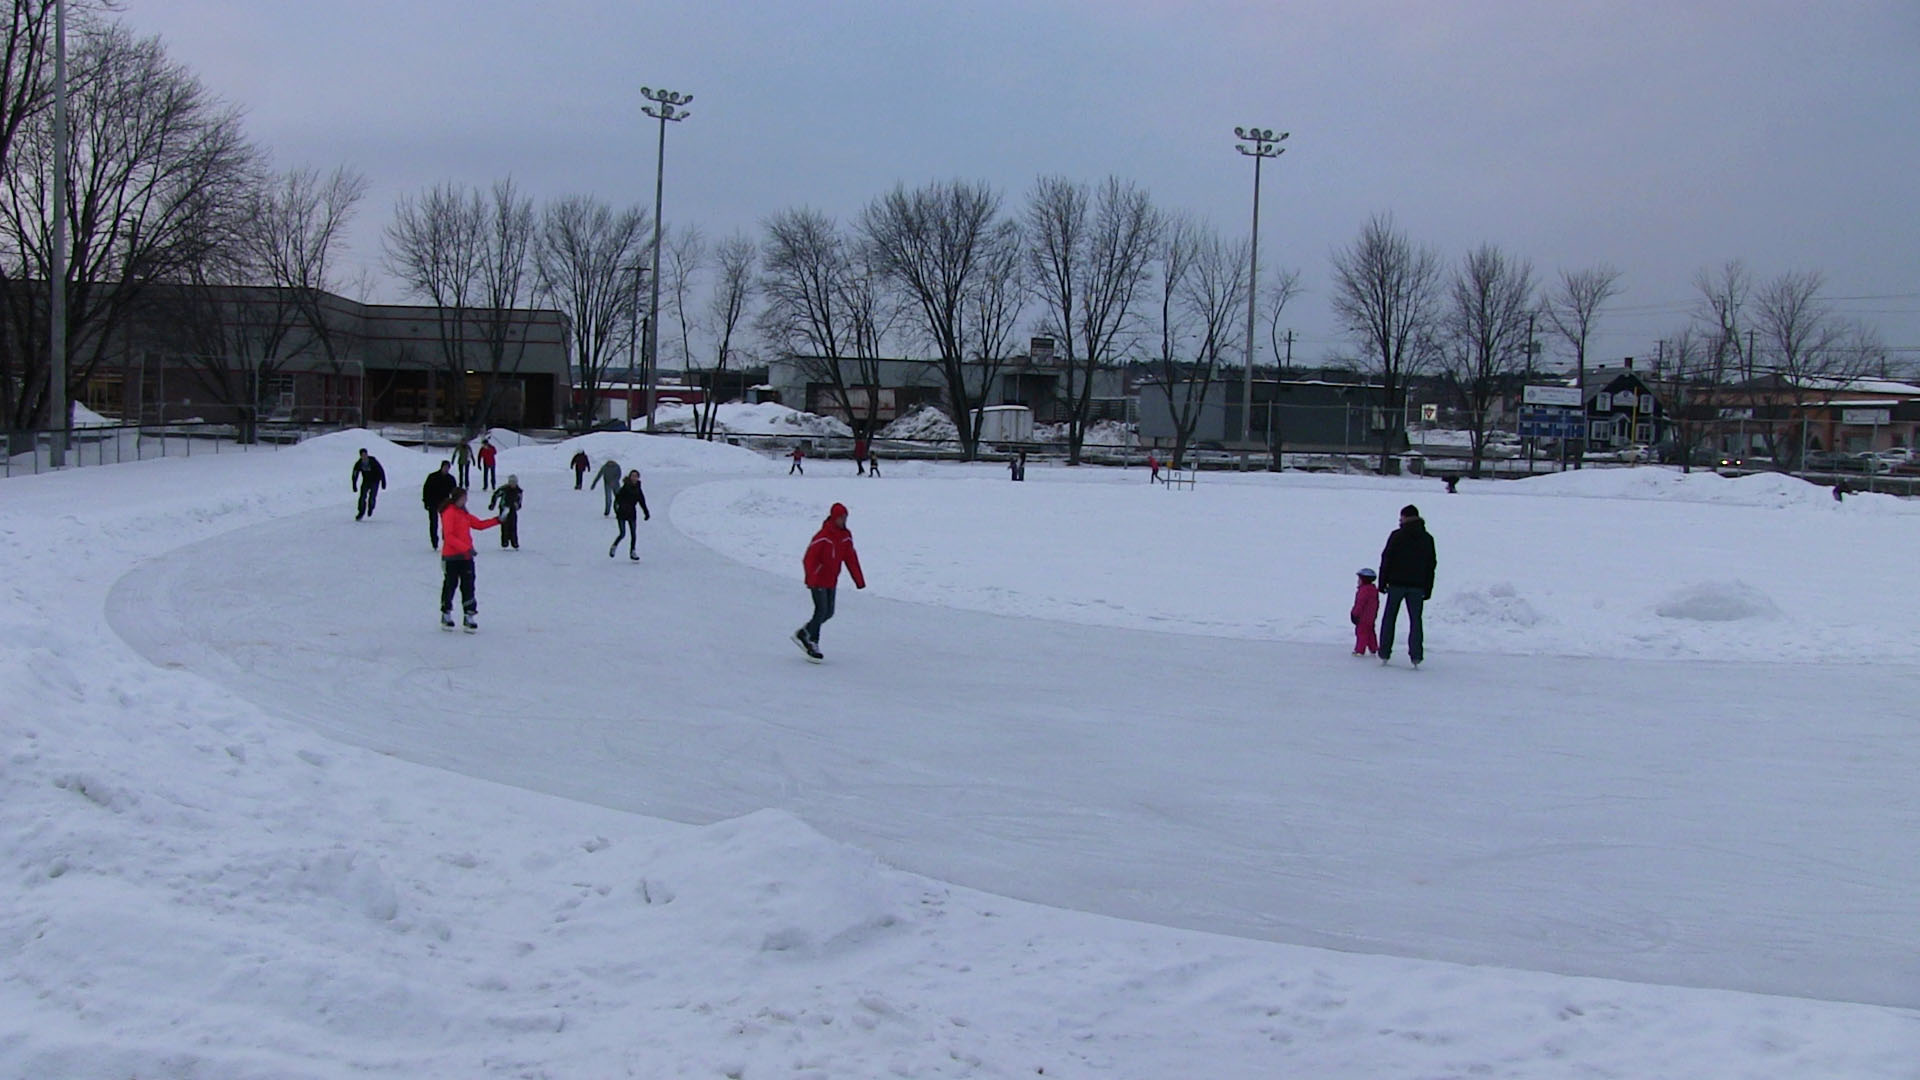 Patinage hockey et anneaux de glace ville de saint georges for Commerce exterieur canada